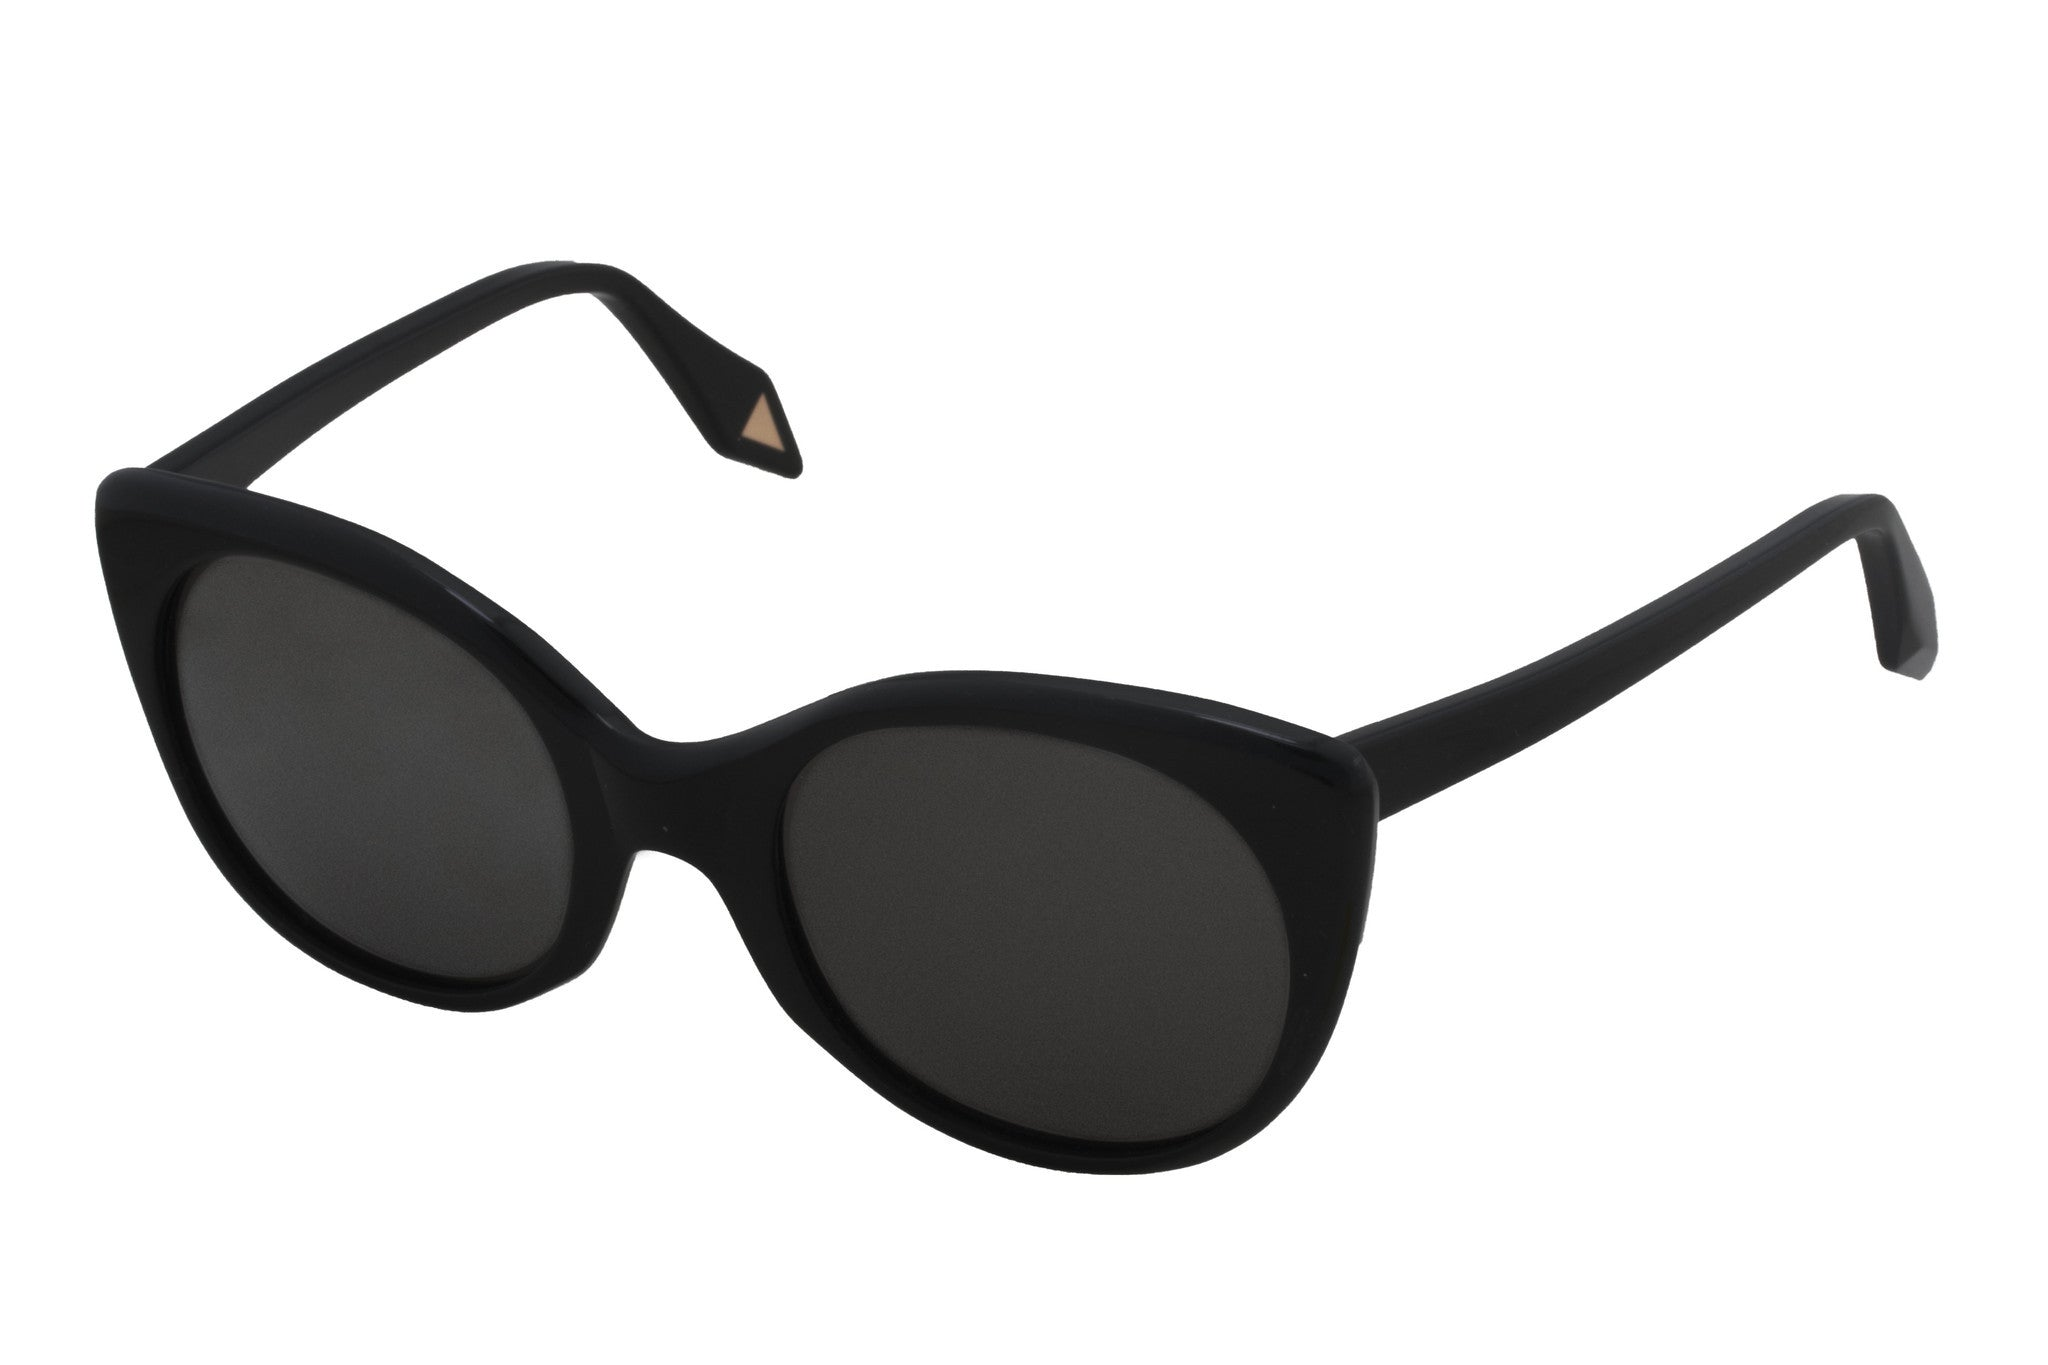 Victoria Beckham VBS41 C2 - Optic Butler